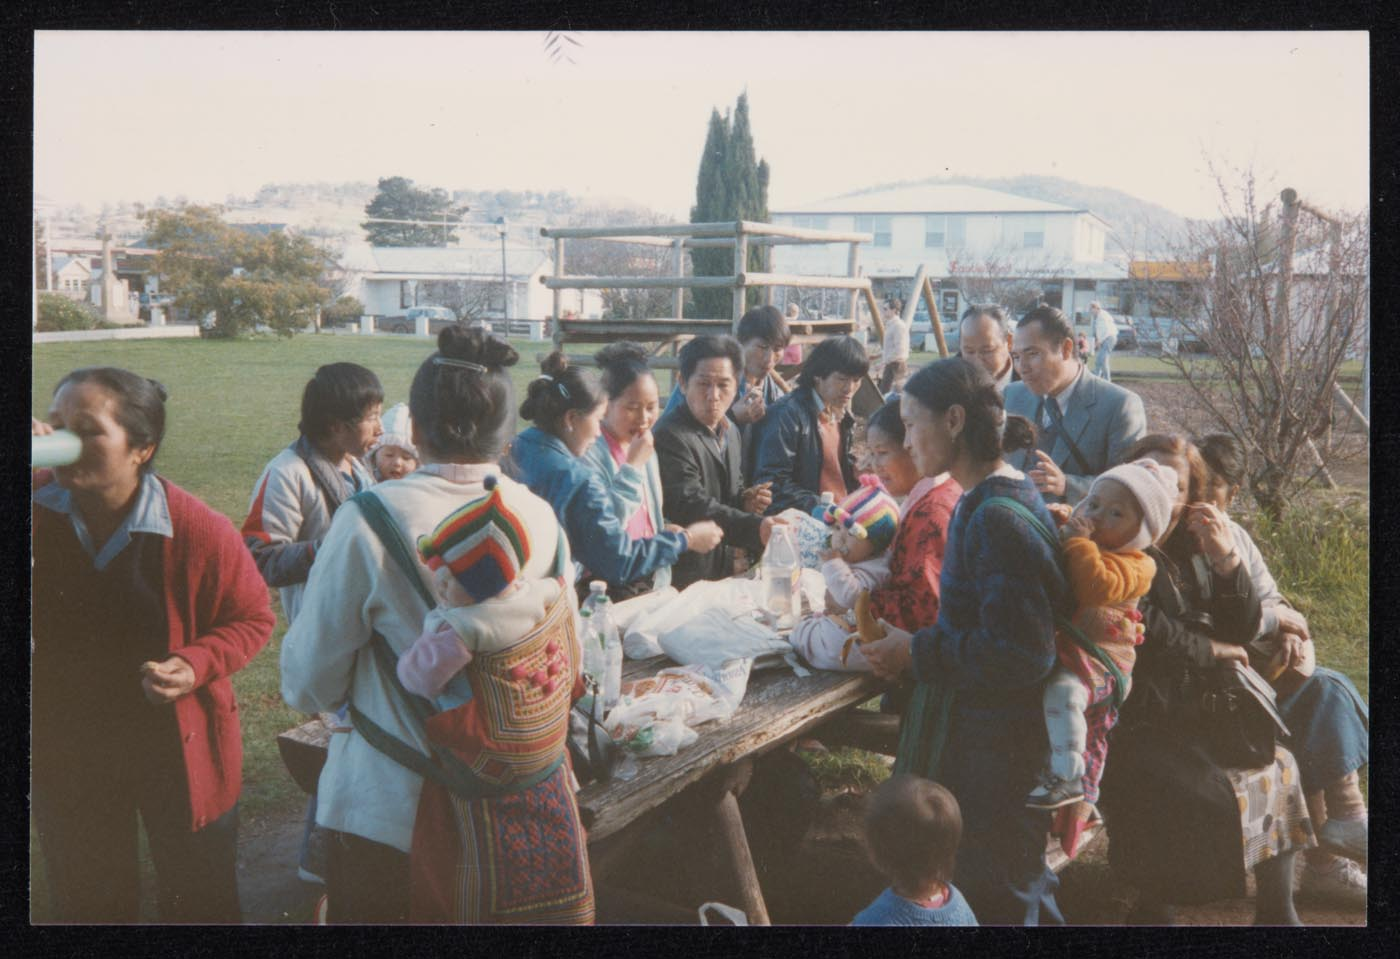 Colour photo of a group of people gathered in a park. They are sharing food which is laid out on a picnic bench.